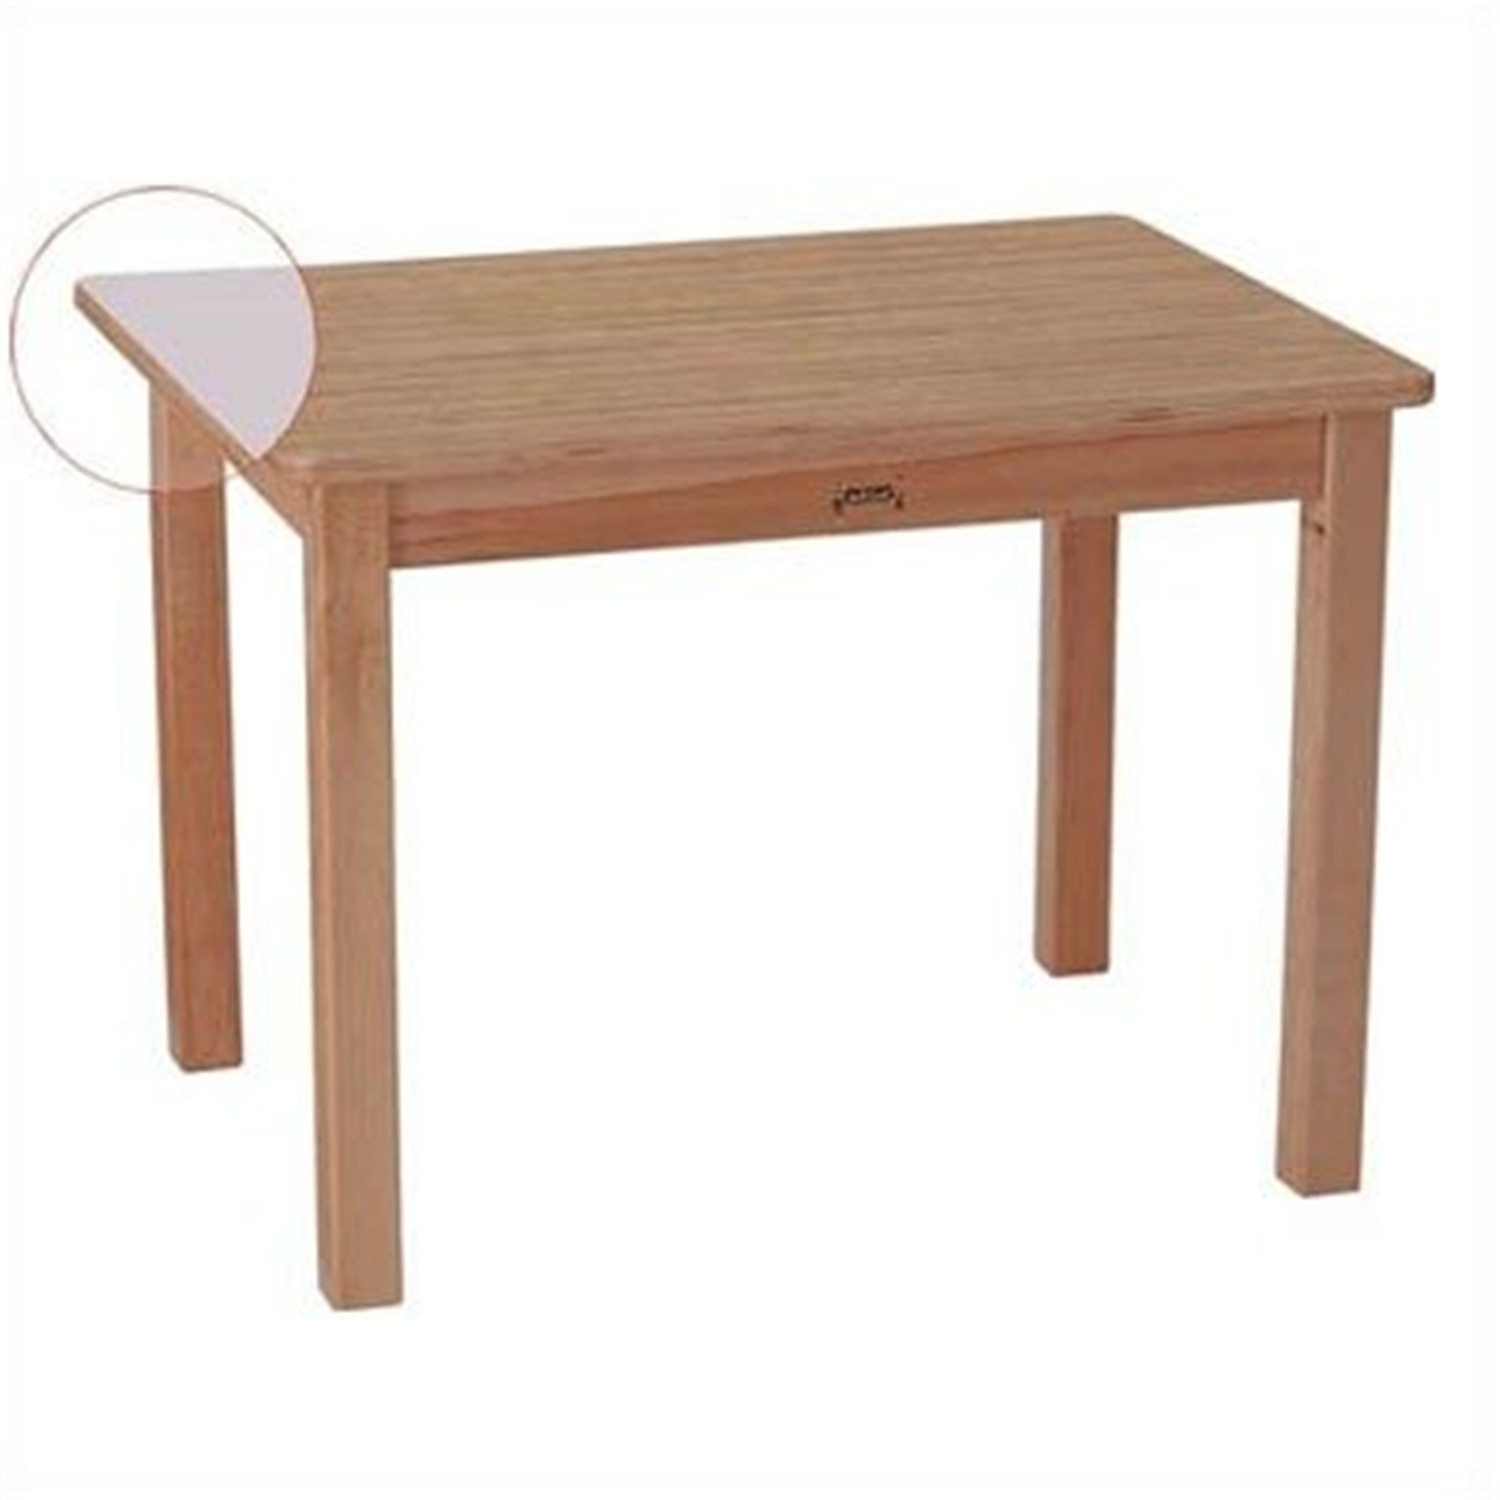 Jonti-craft Multi-purpose Rectangle Table - [56616JC]